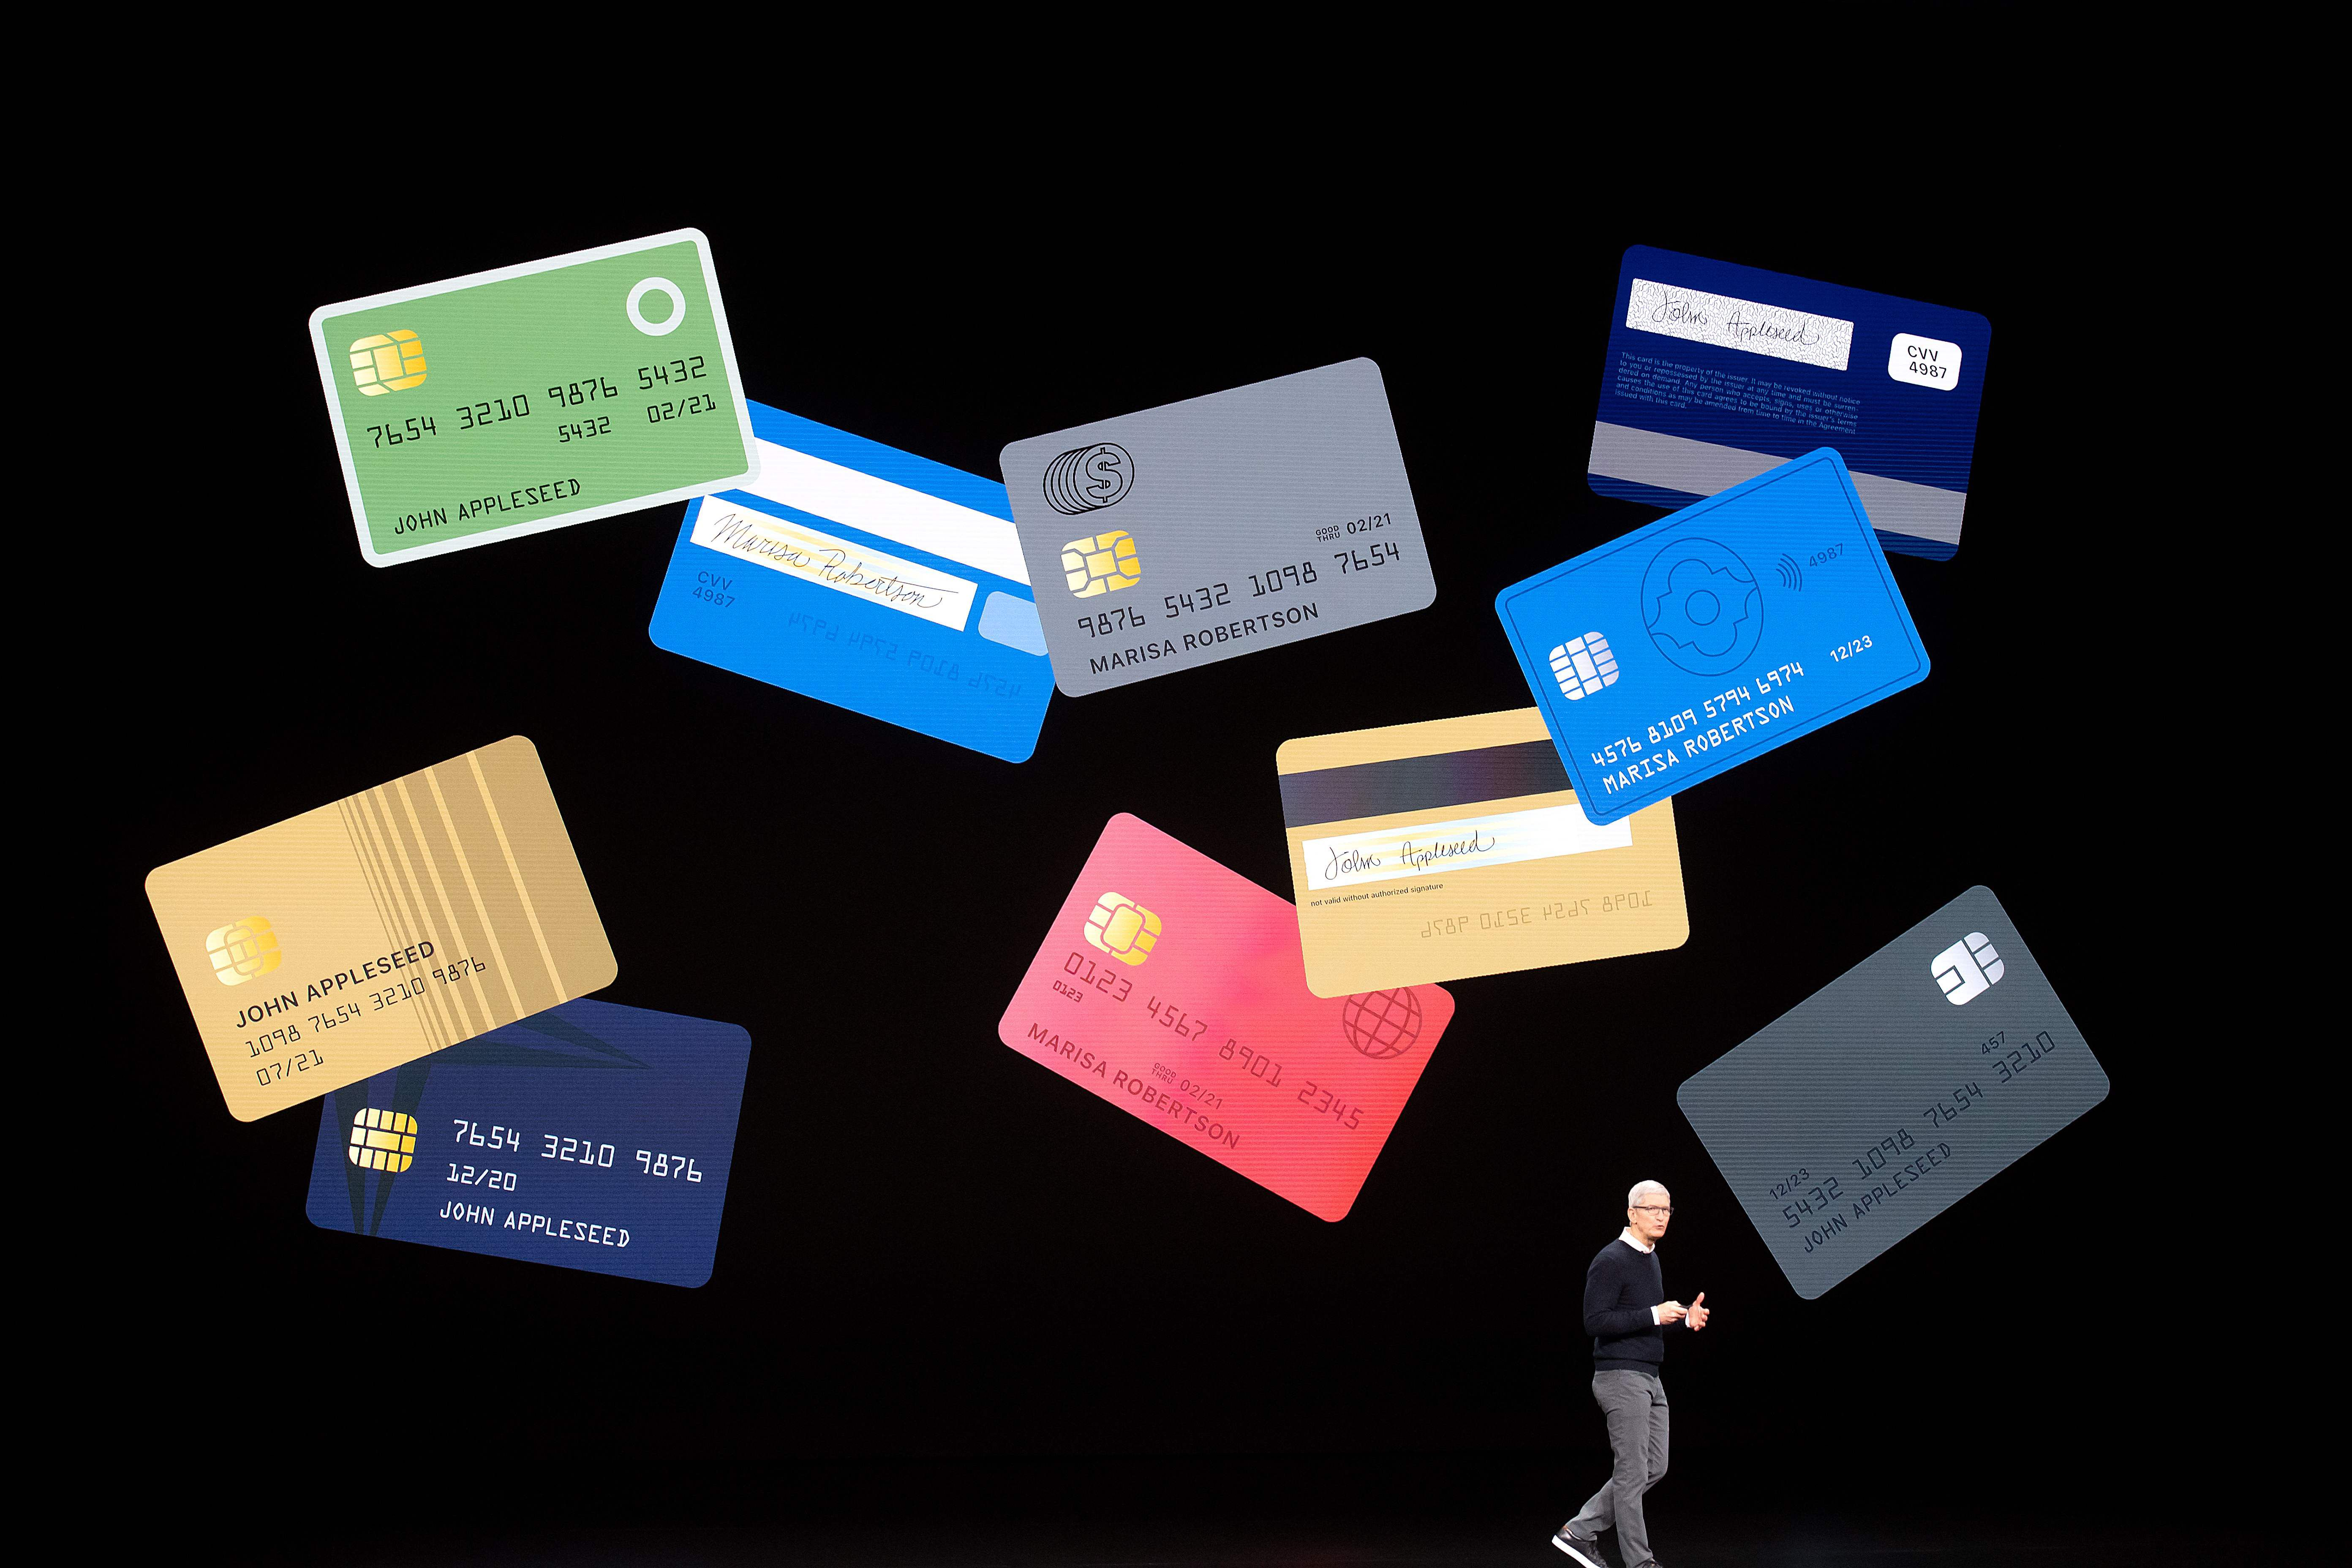 Apple launches new entertainment and financial services